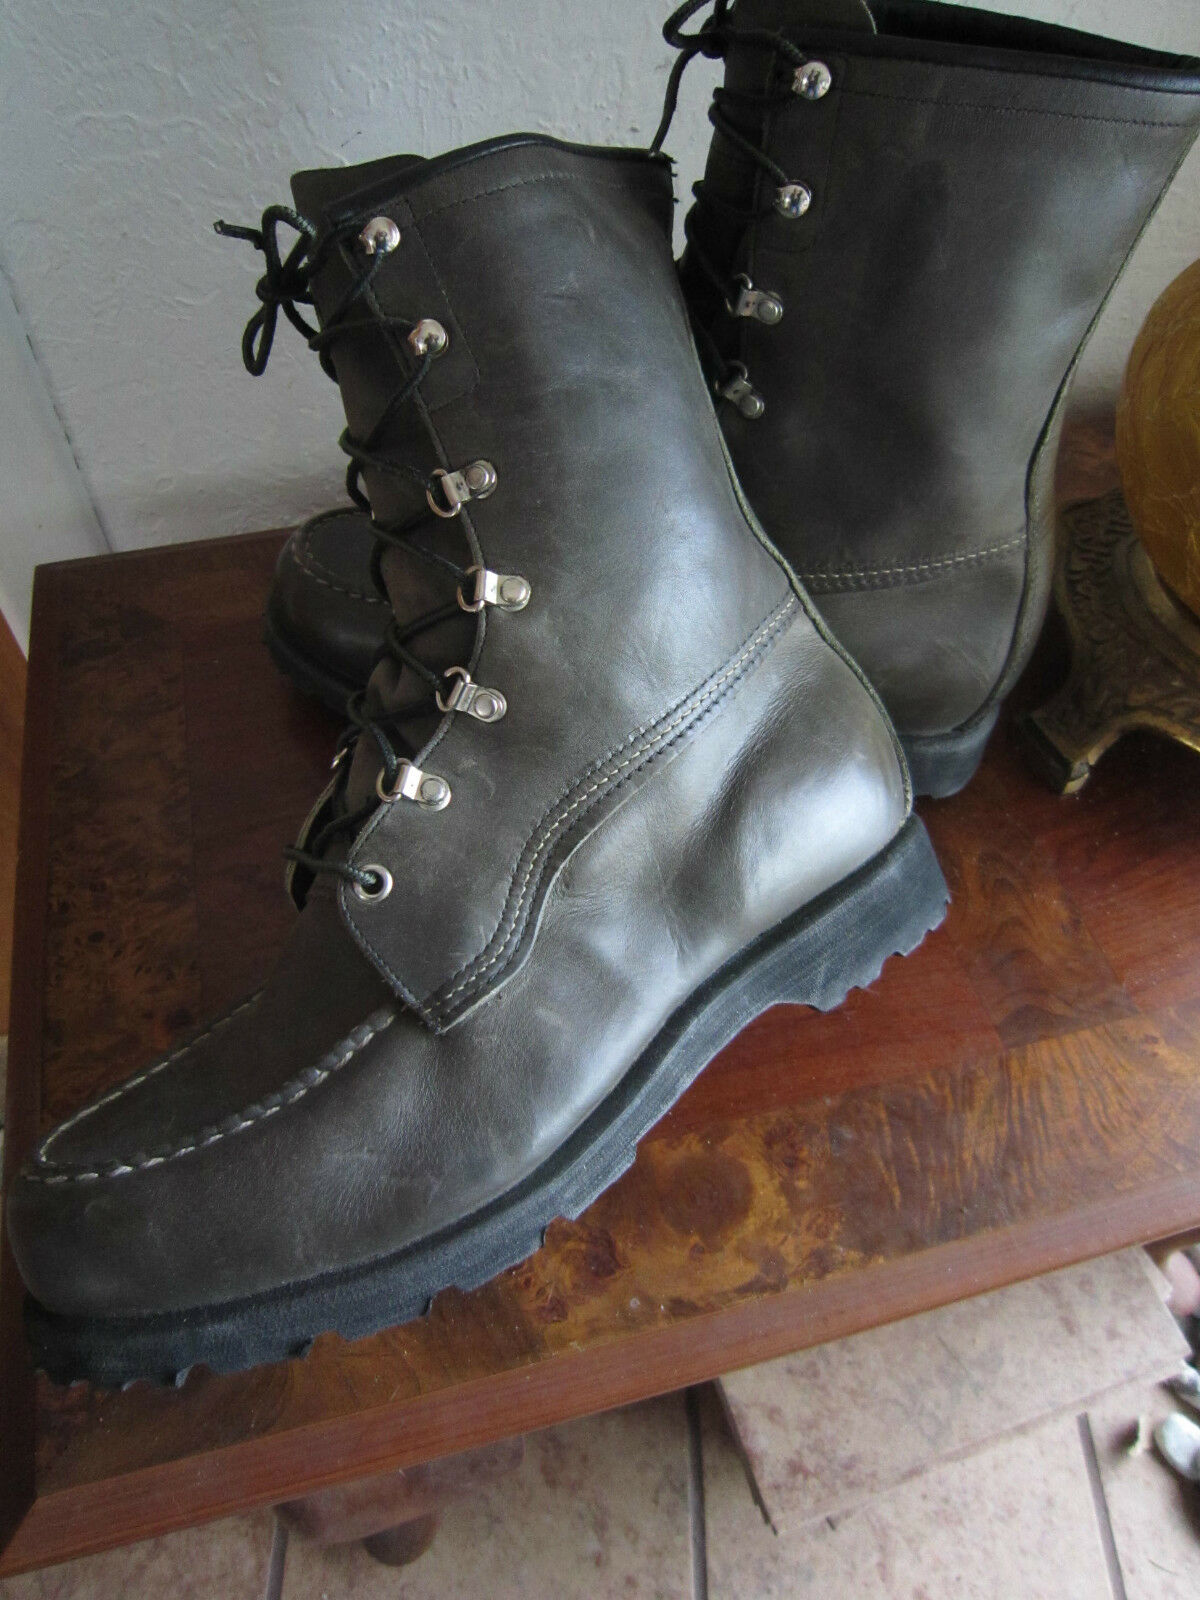 Unbelievable  SEARS TED WILLIAMS Hunting Boots-40+ yrs old NEVER WORN sz 9